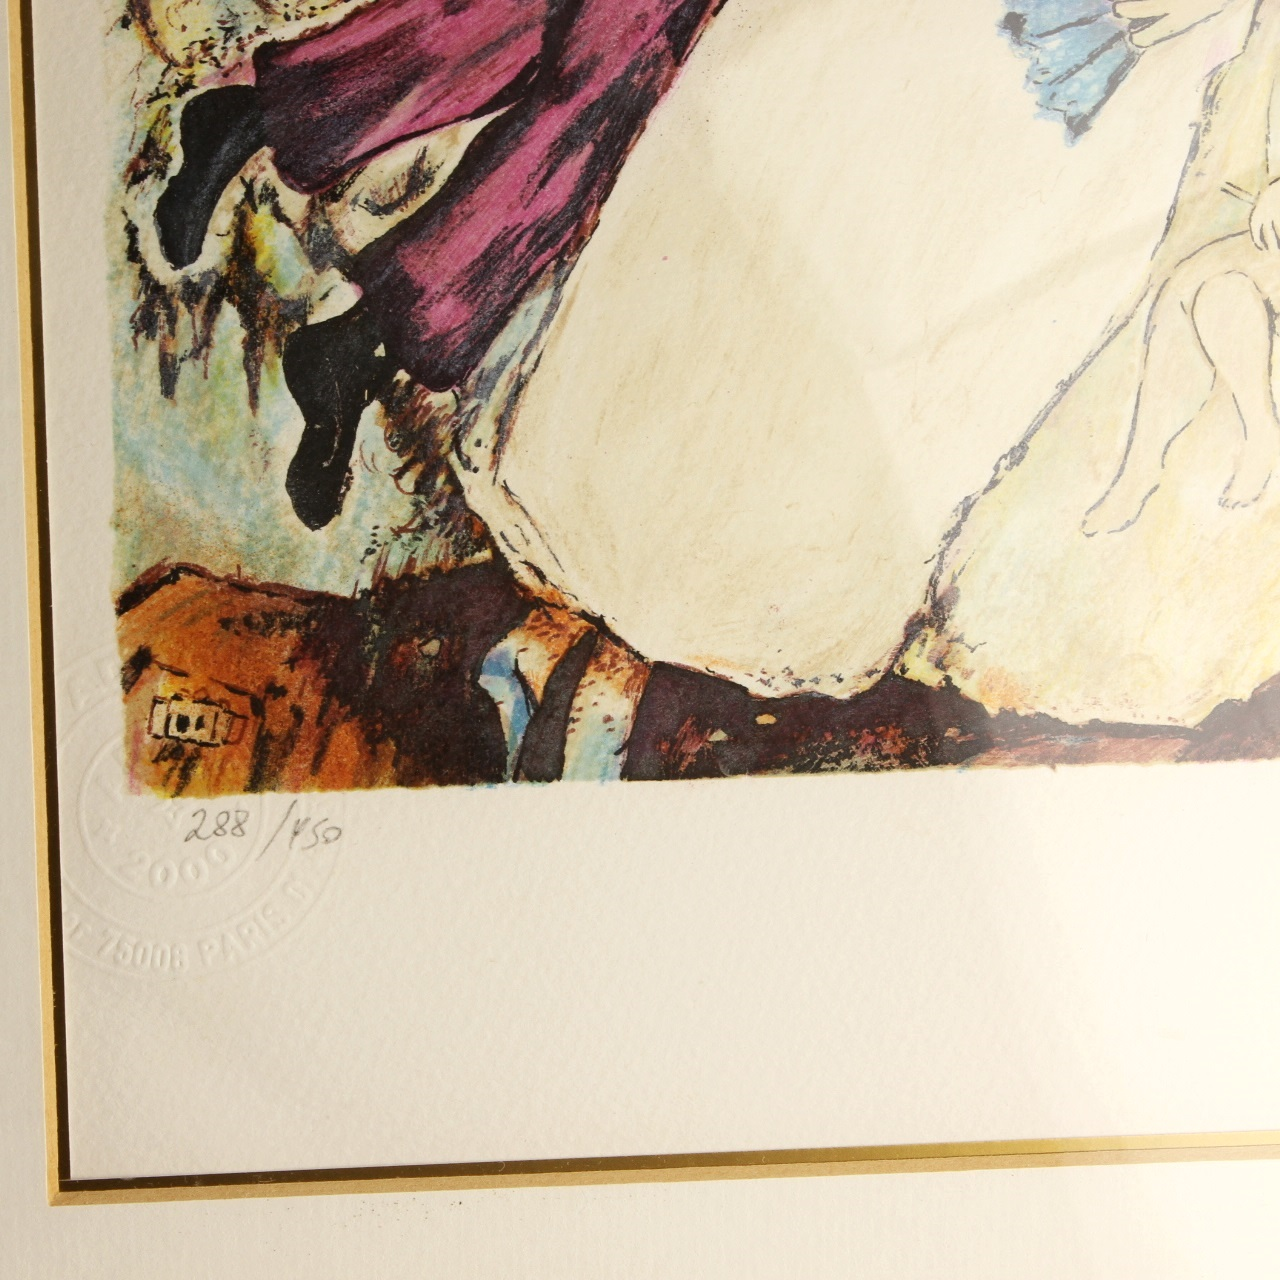 Goodlife Auctions Lot 1404 Marc Chagall Lithograph